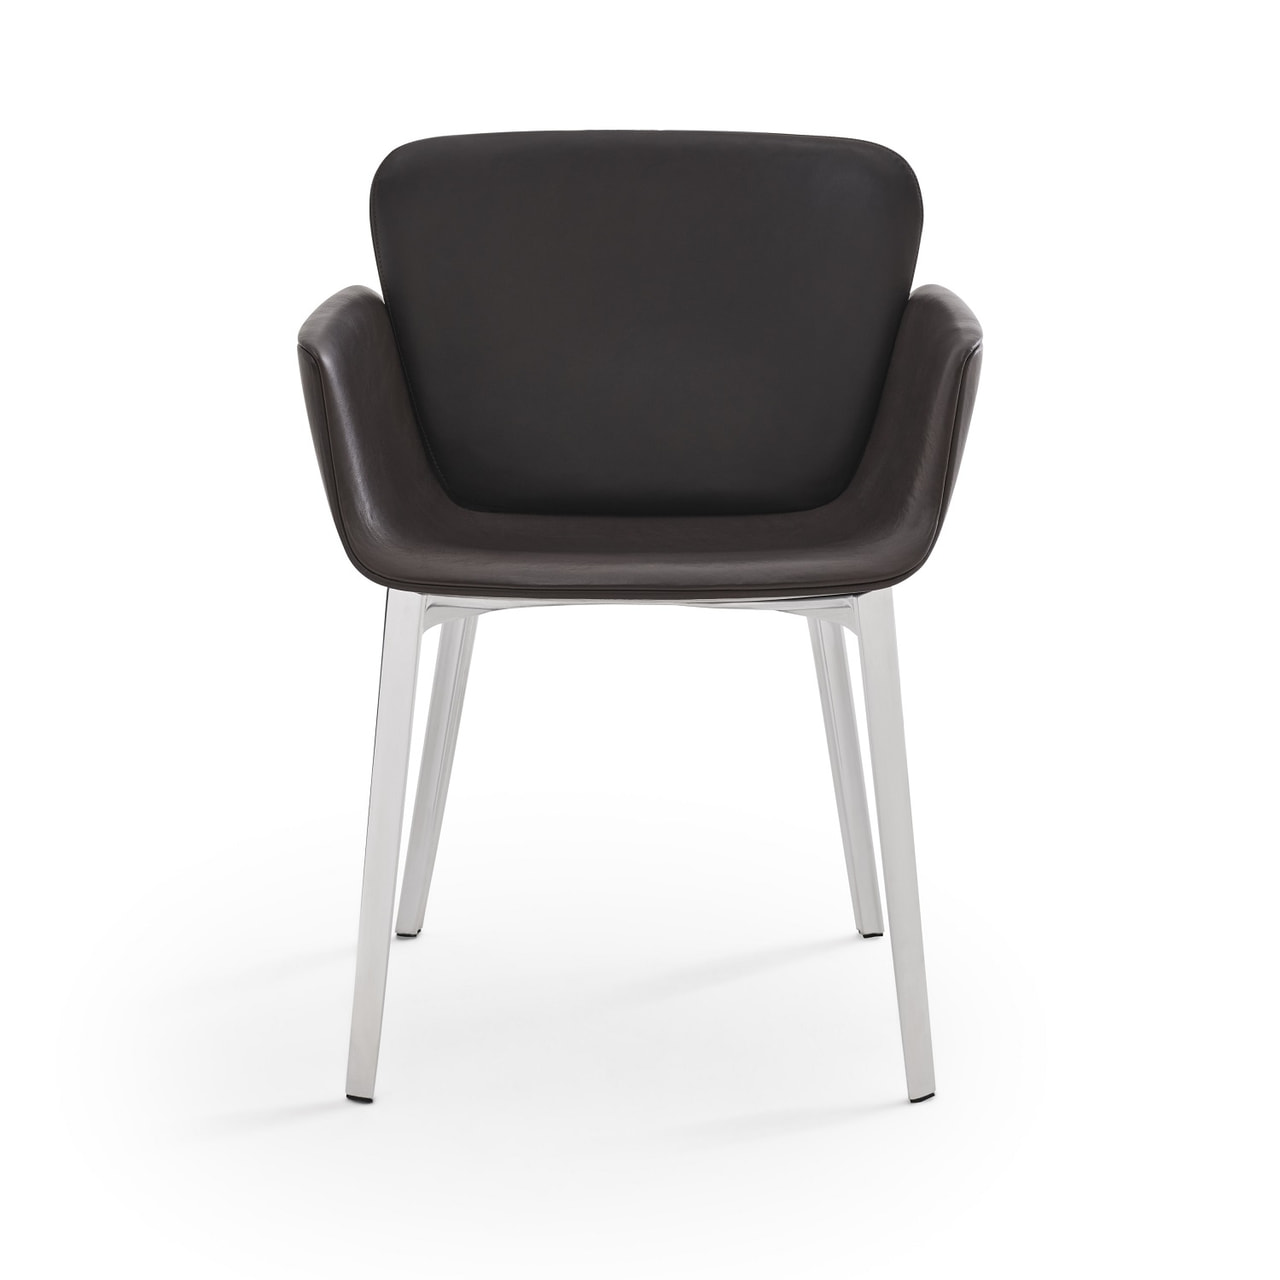 KN Collection by Knoll – KN 06 Armchair